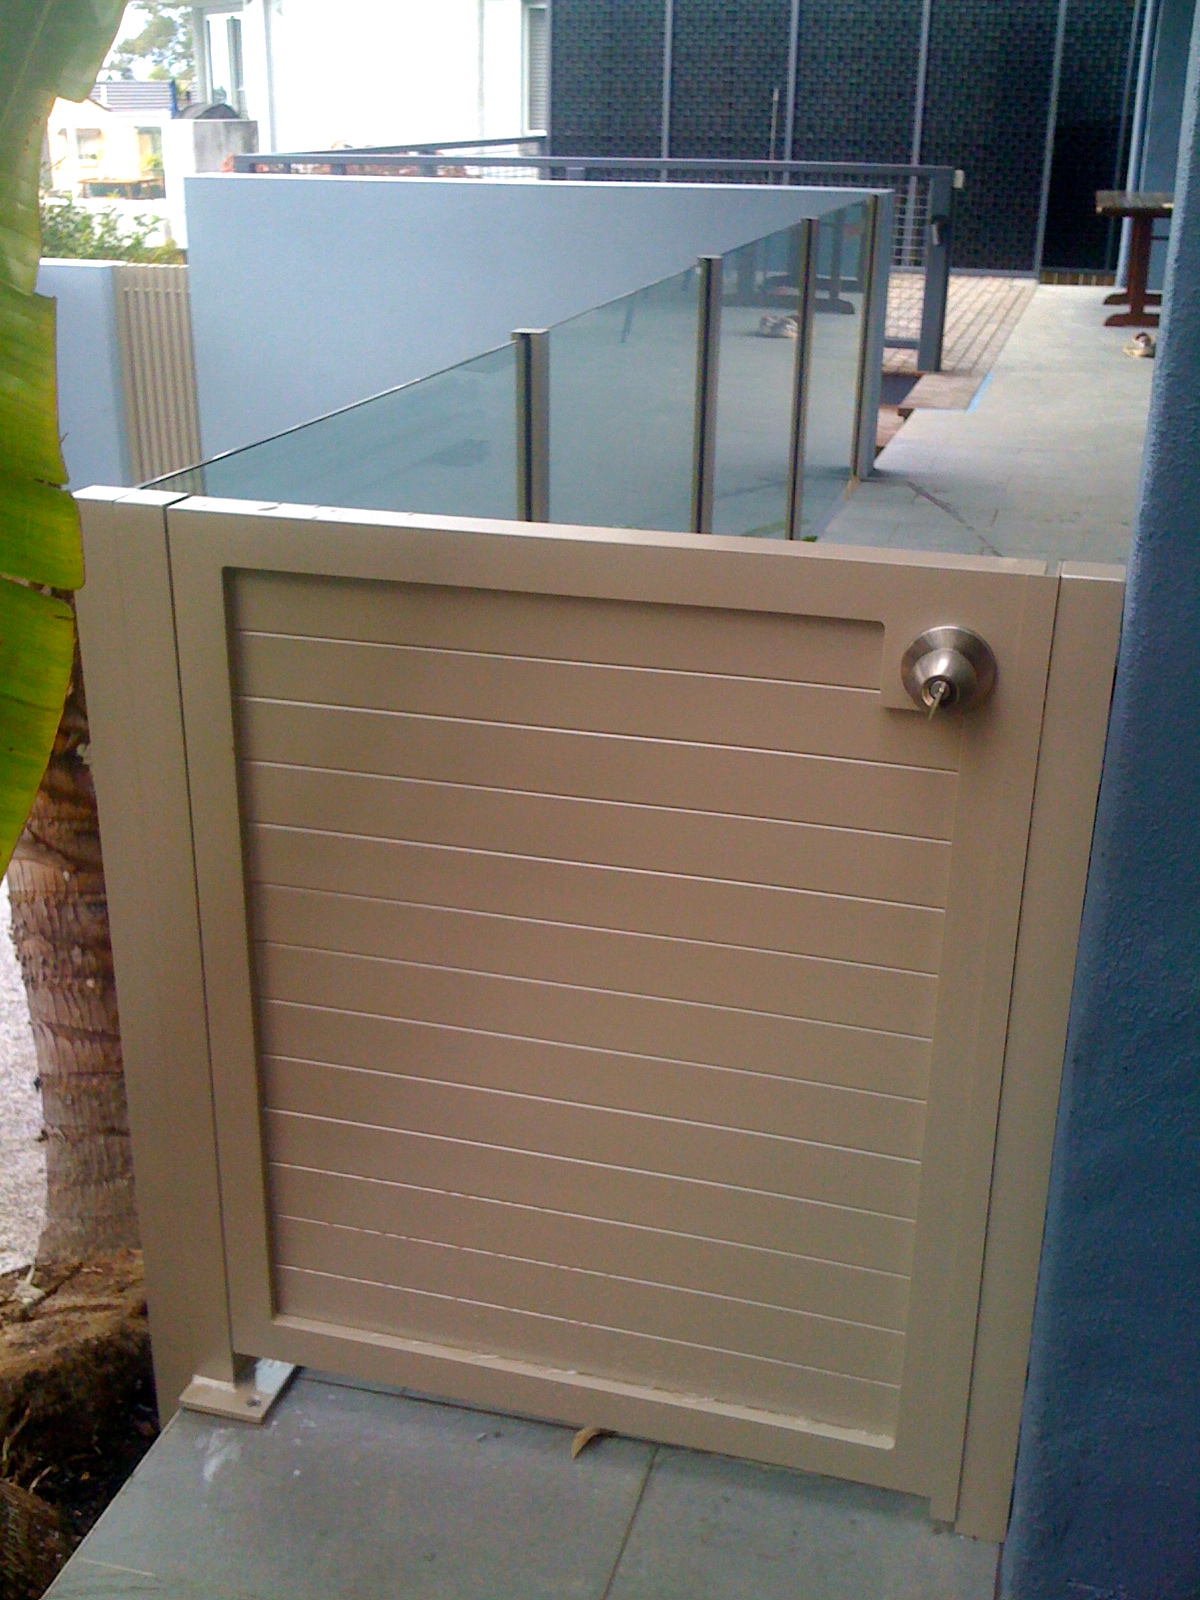 Horizontal slat gate